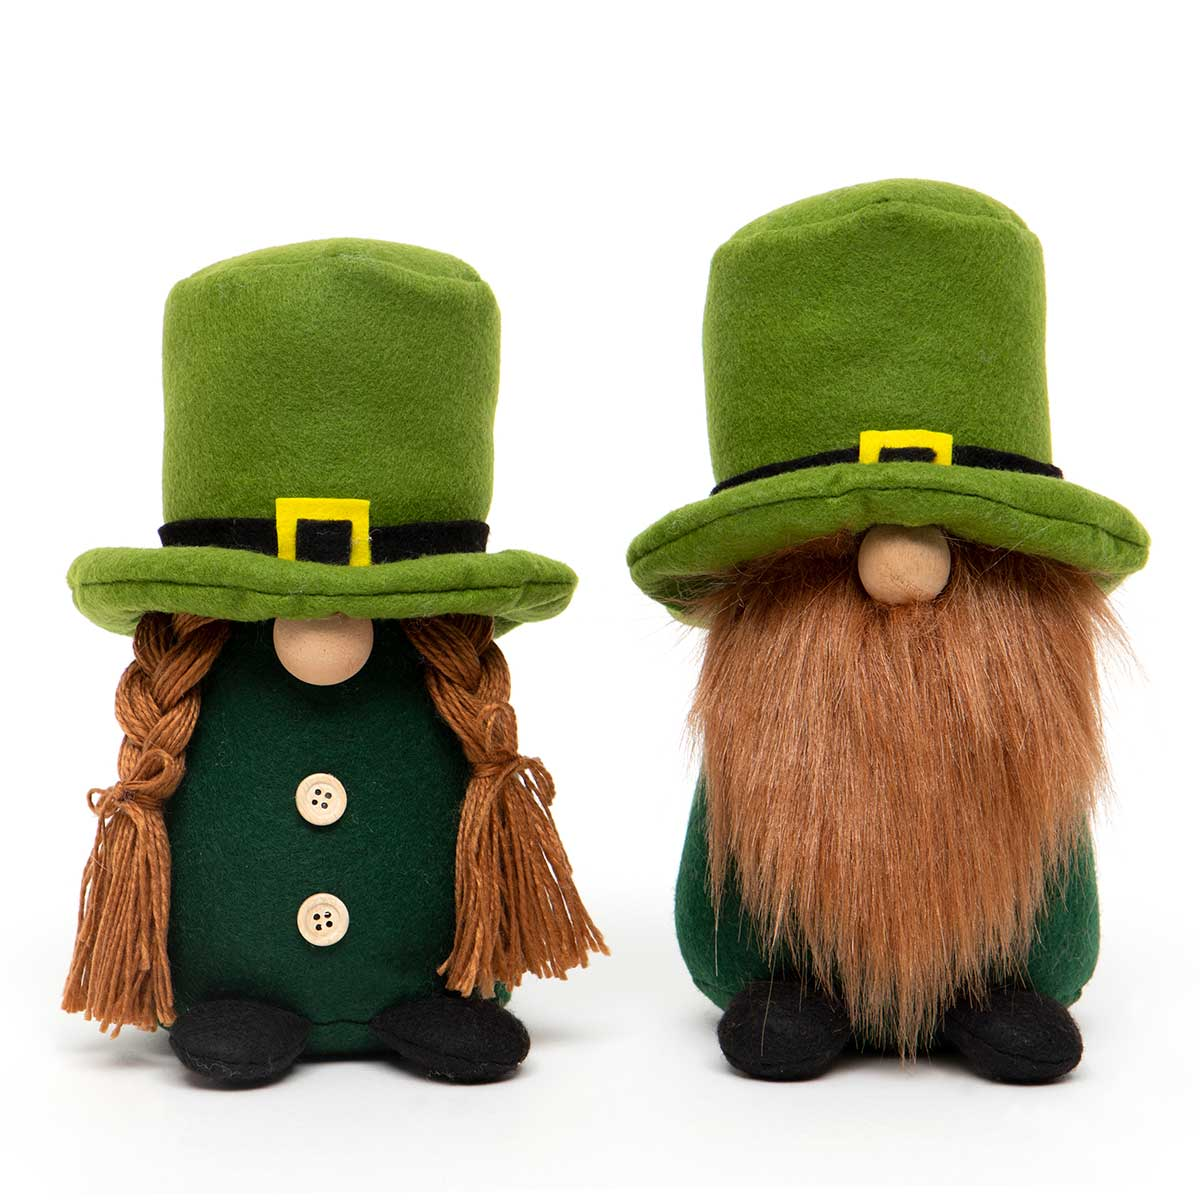 ST PATTY GNOME COUPLE 2 Assorted